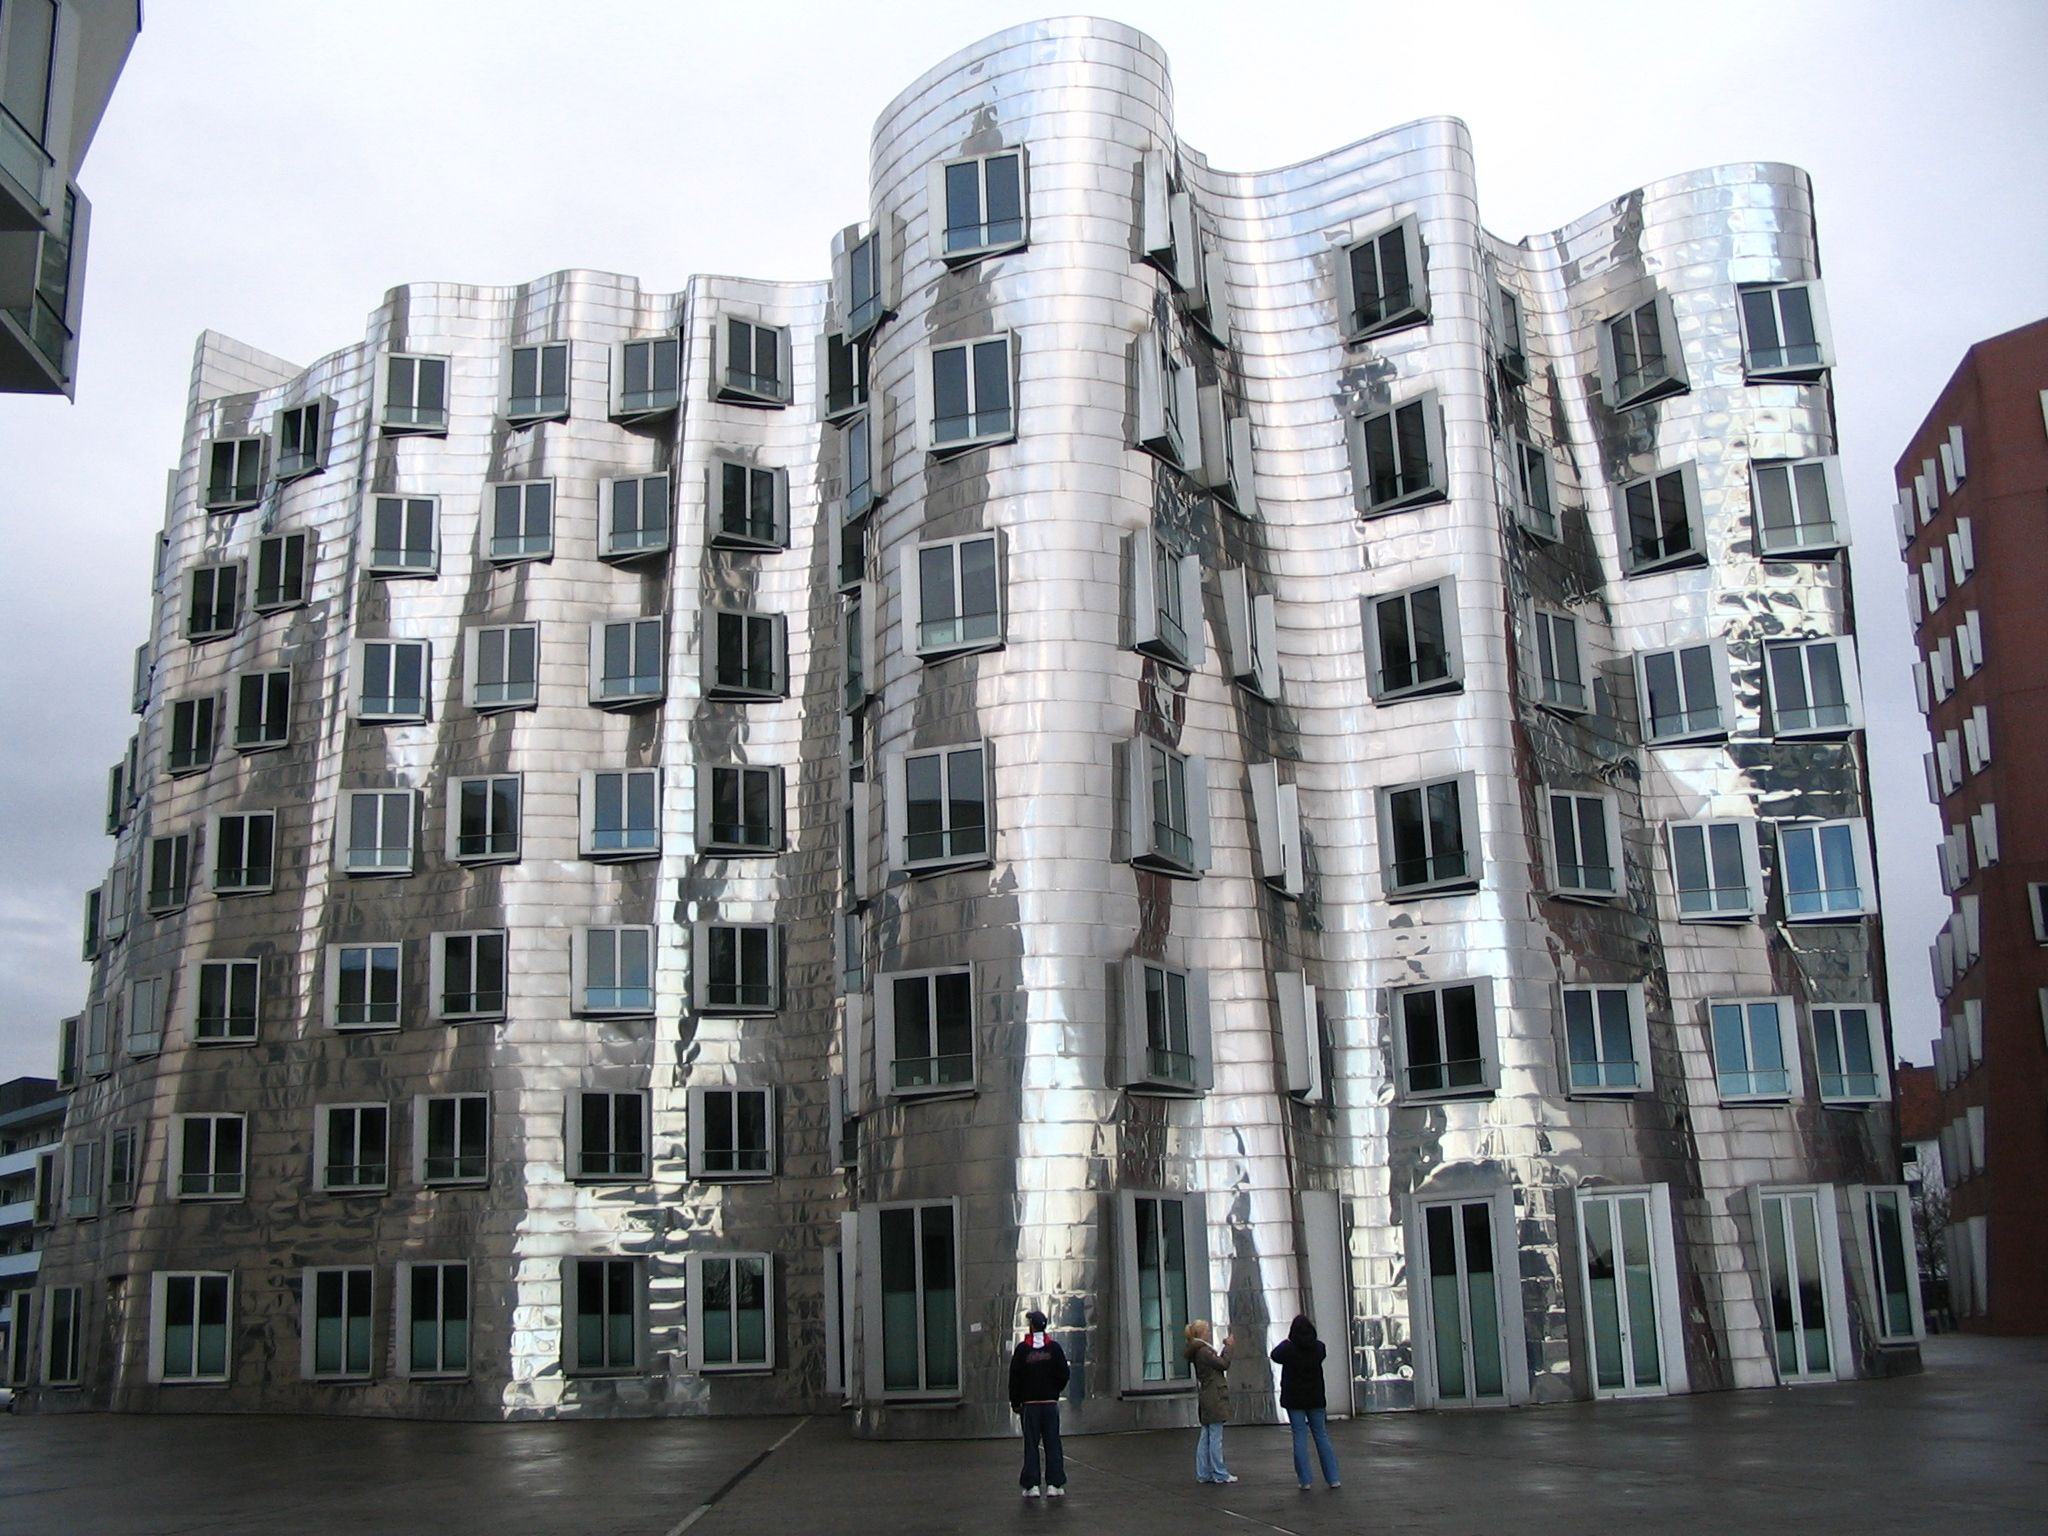 Len Düsseldorf pin by chris allendorf on archit frank gehry building